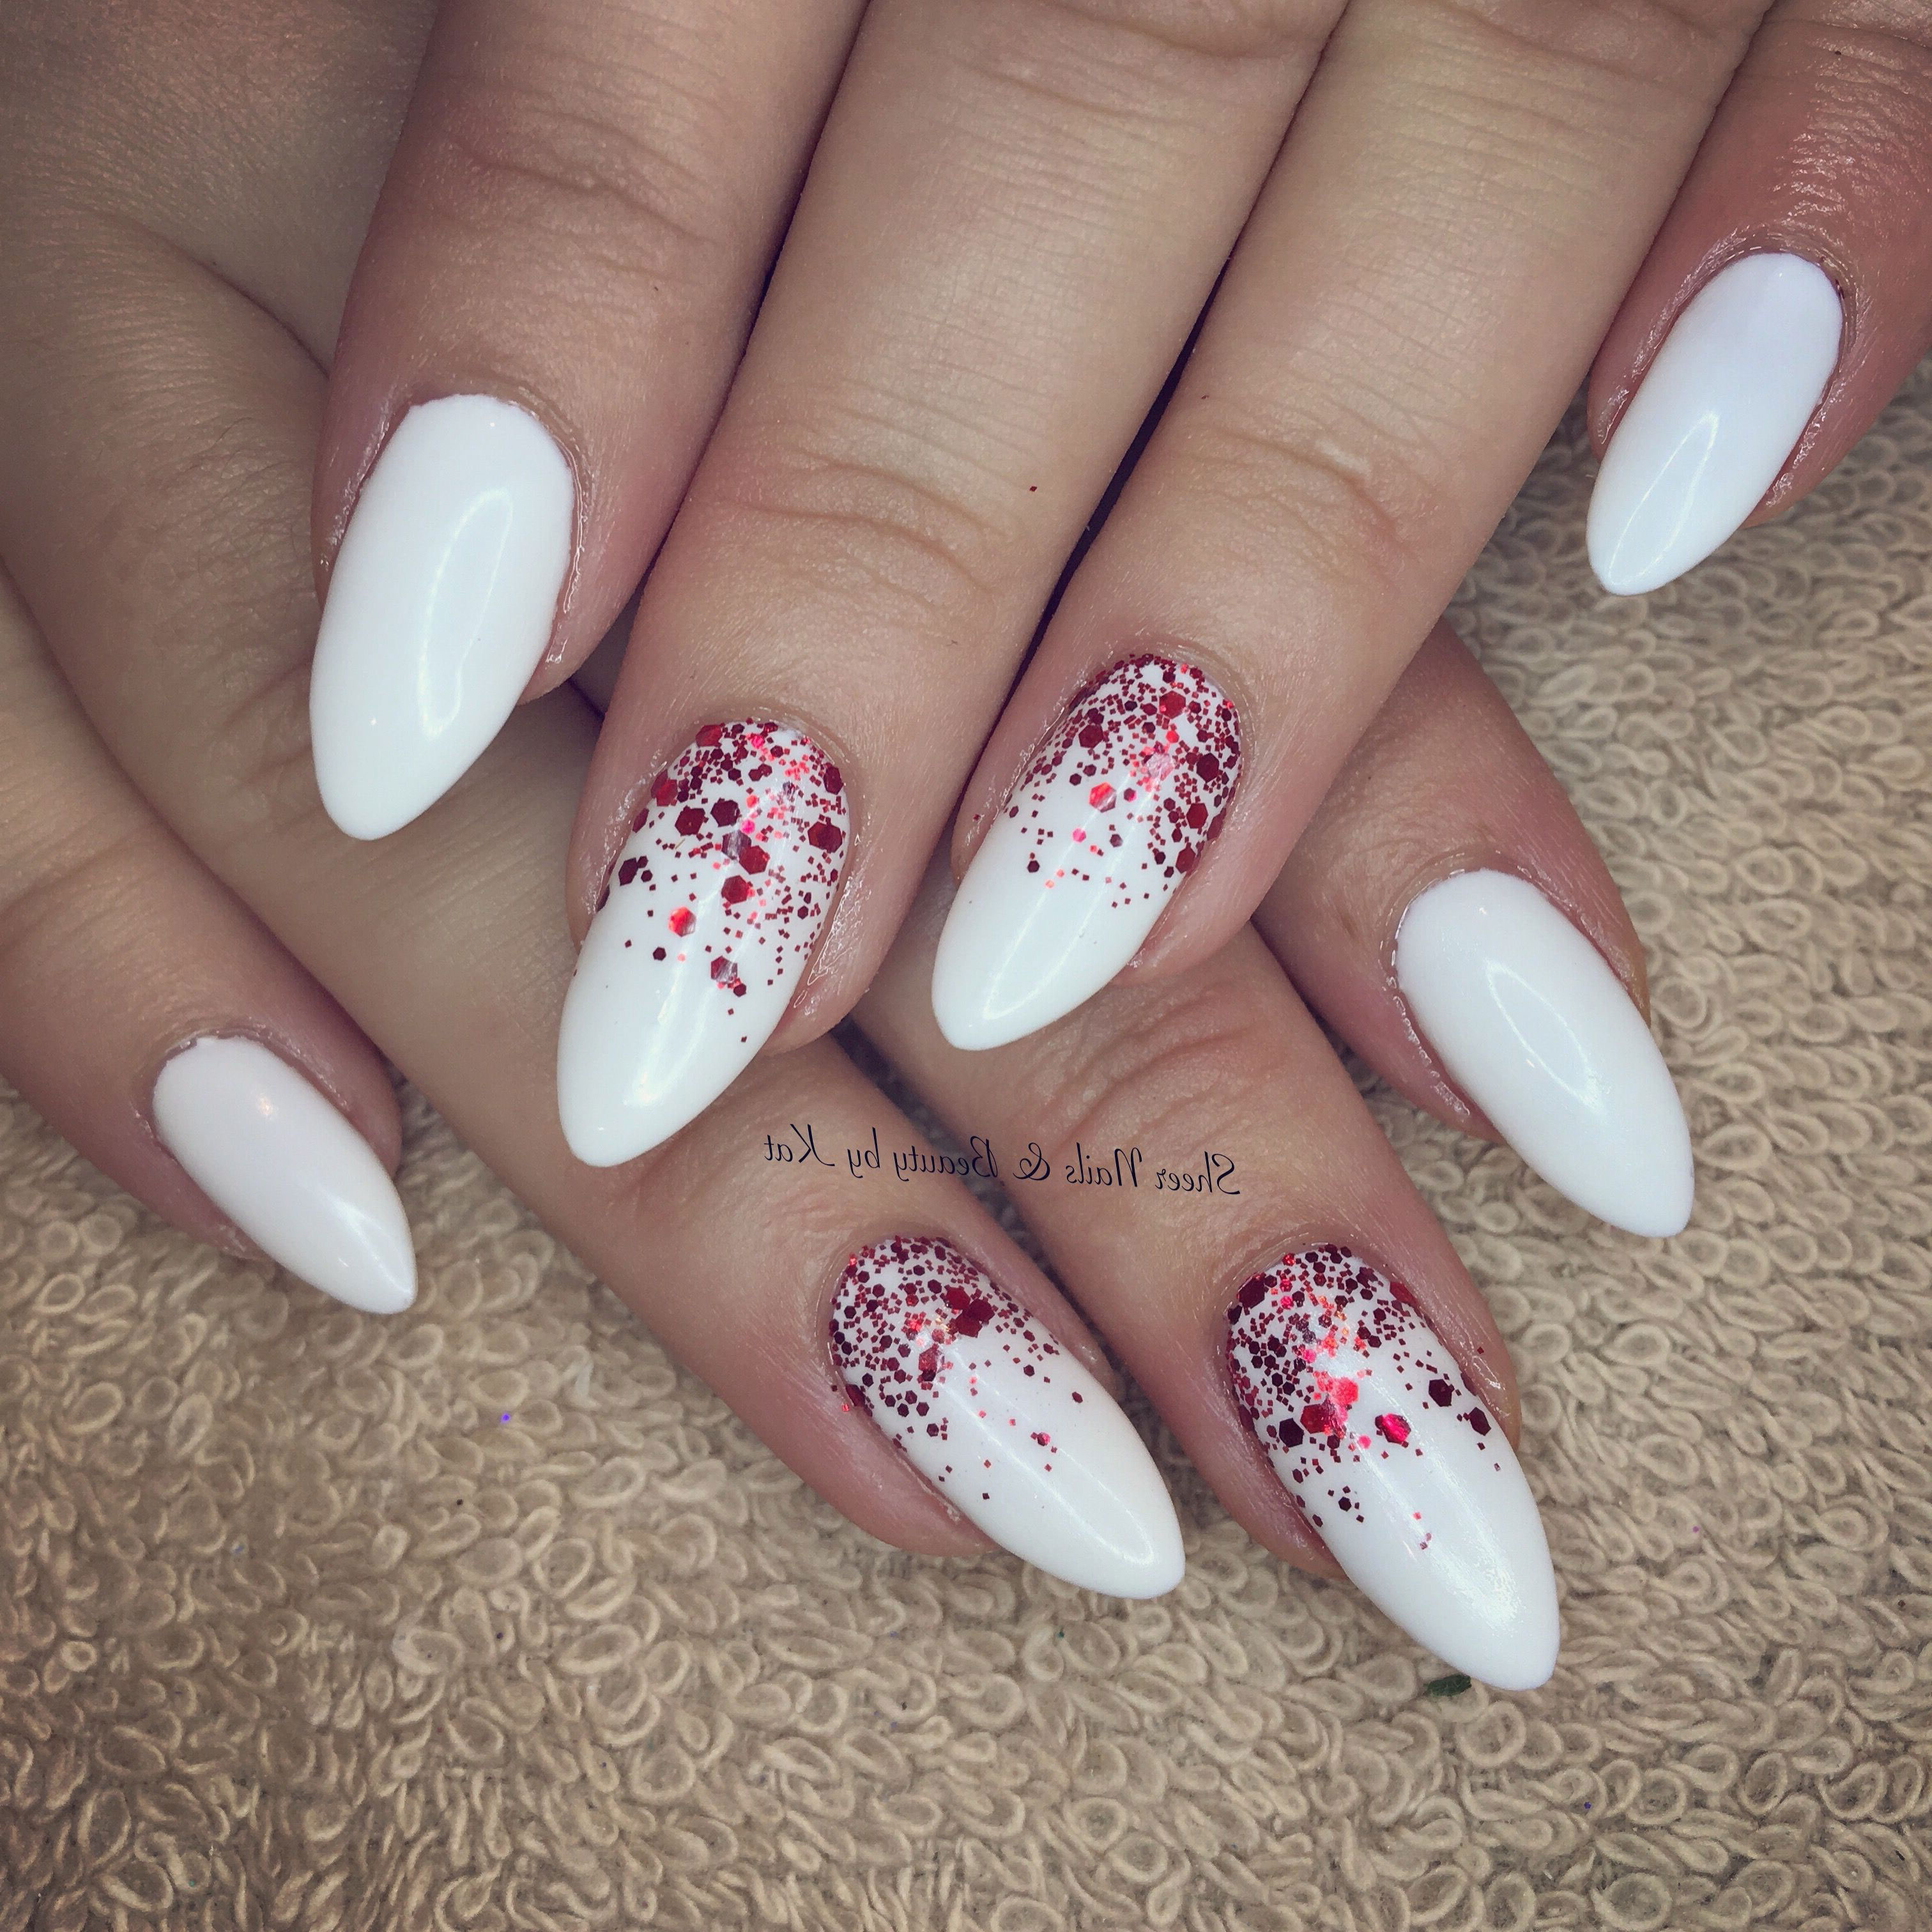 50 Glitter Nail Designs for Shiny Hands , Yve,Style.com